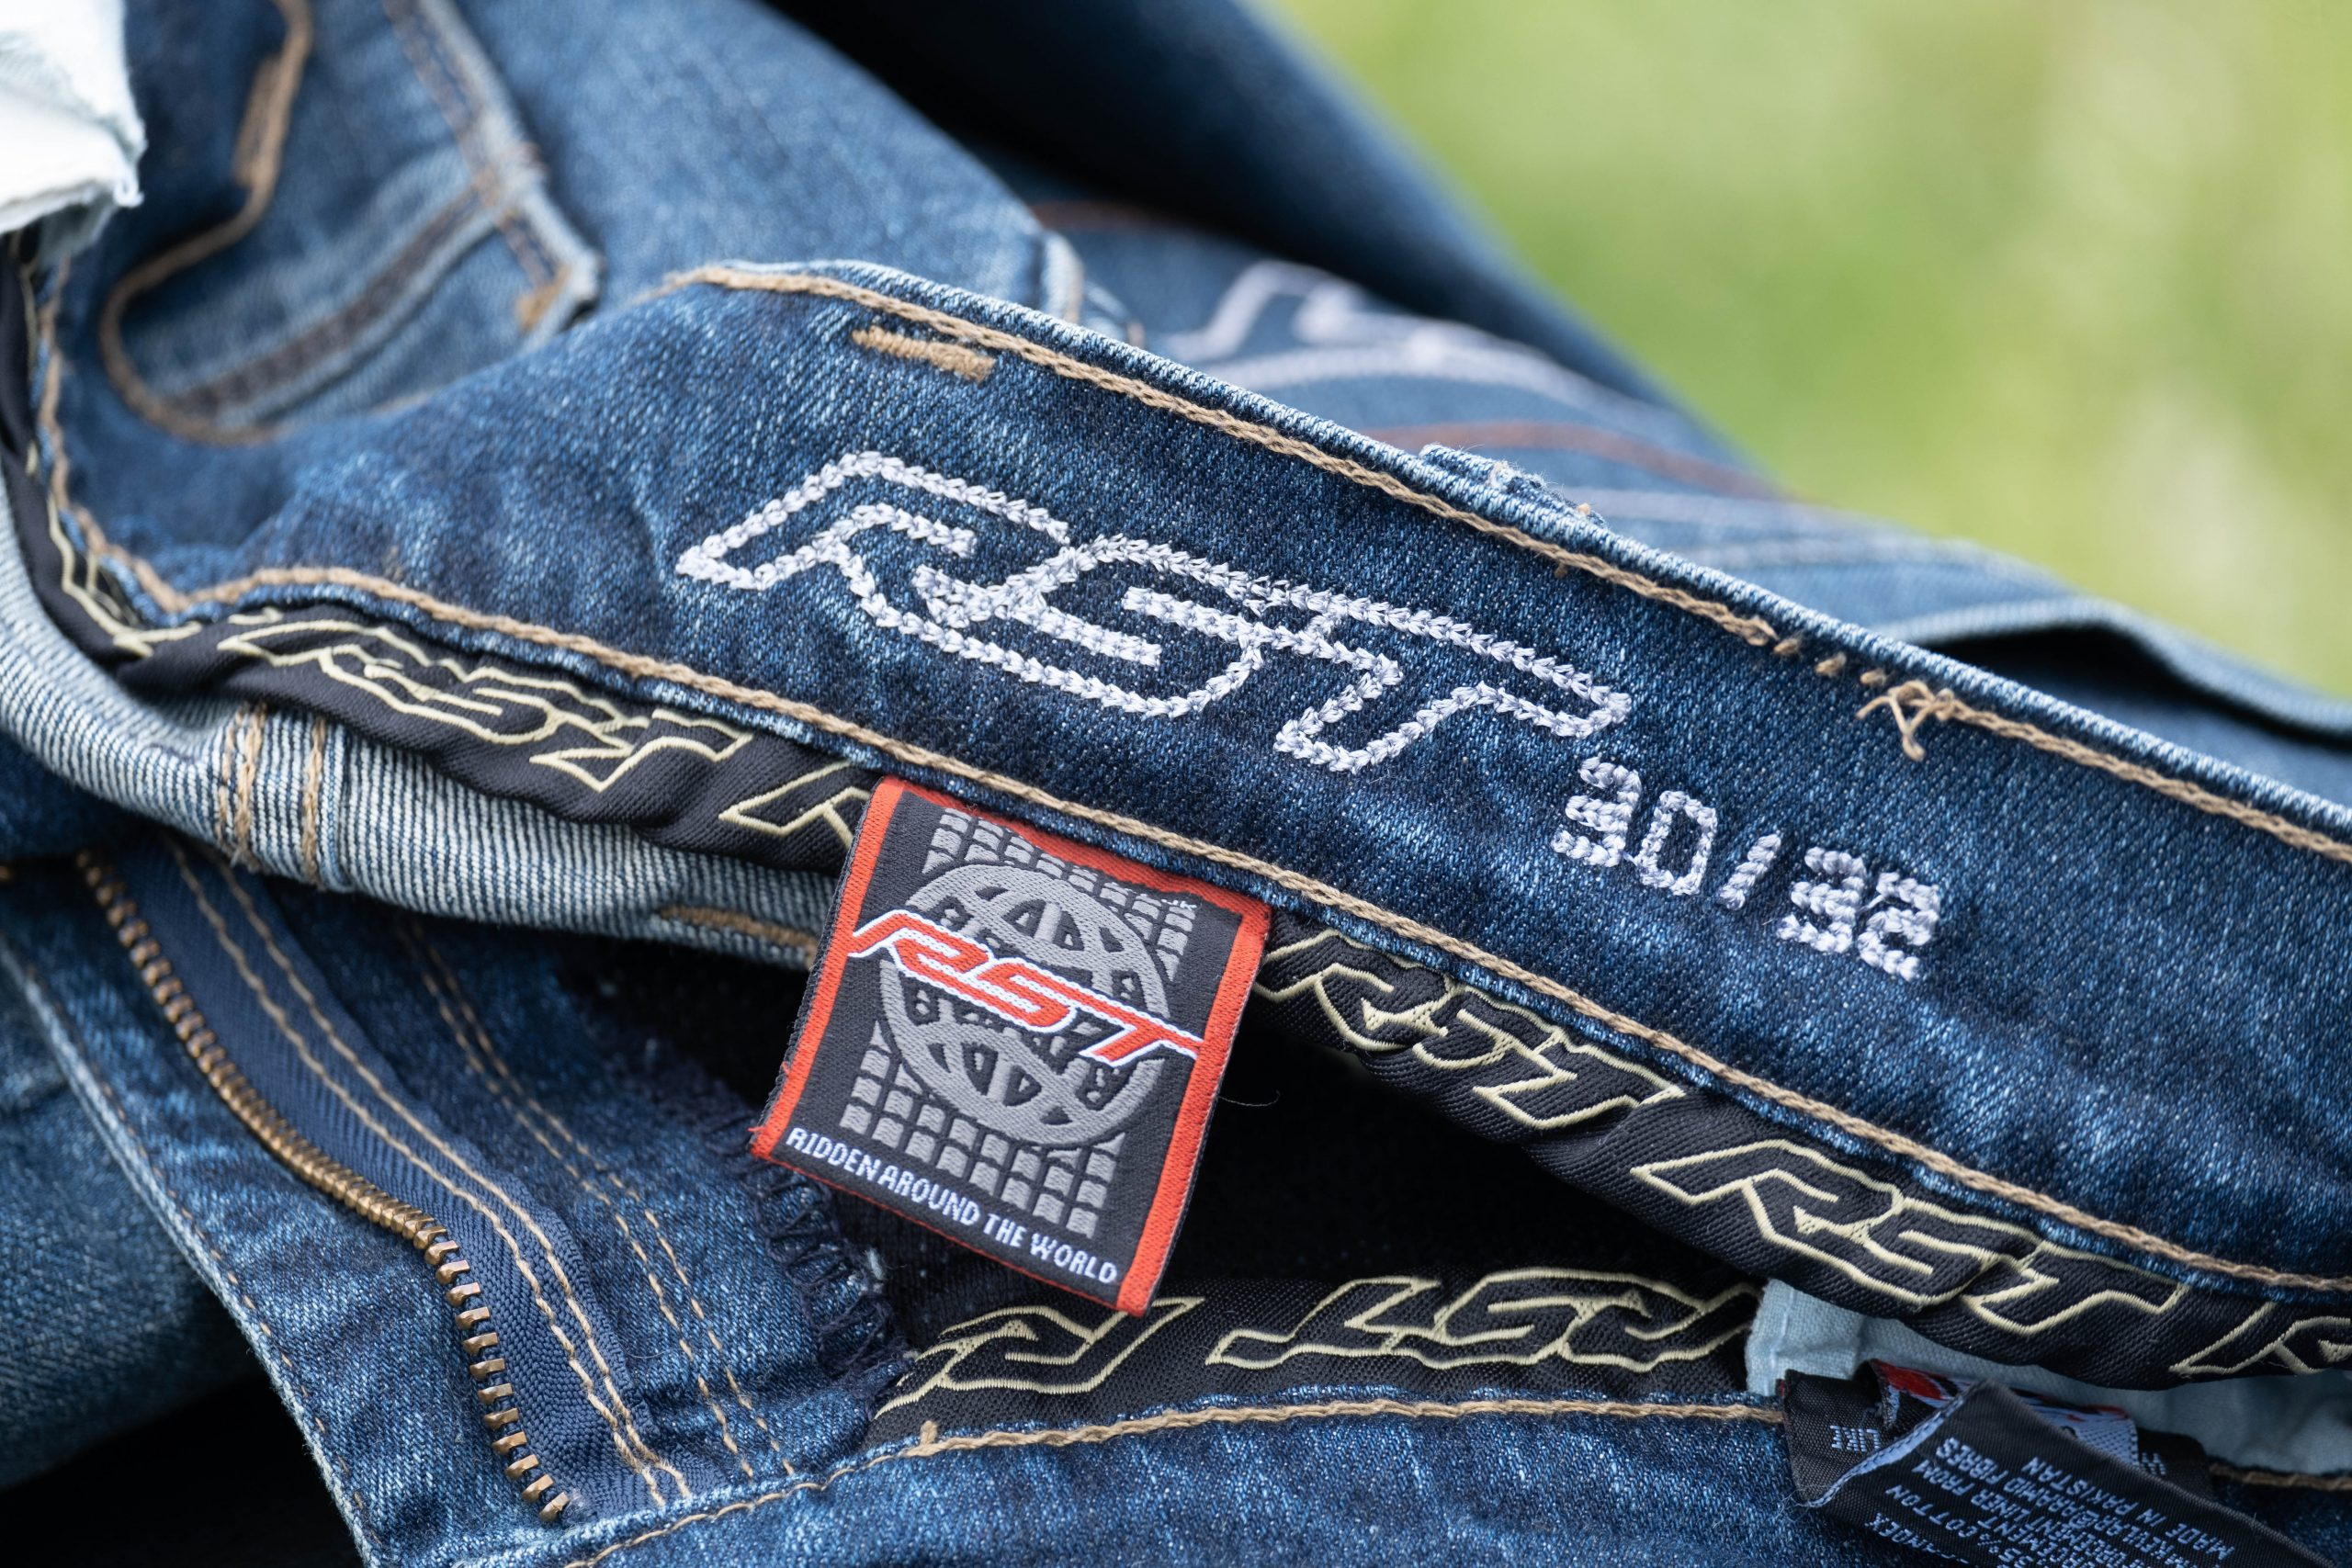 RST aramid motorcycle jeans